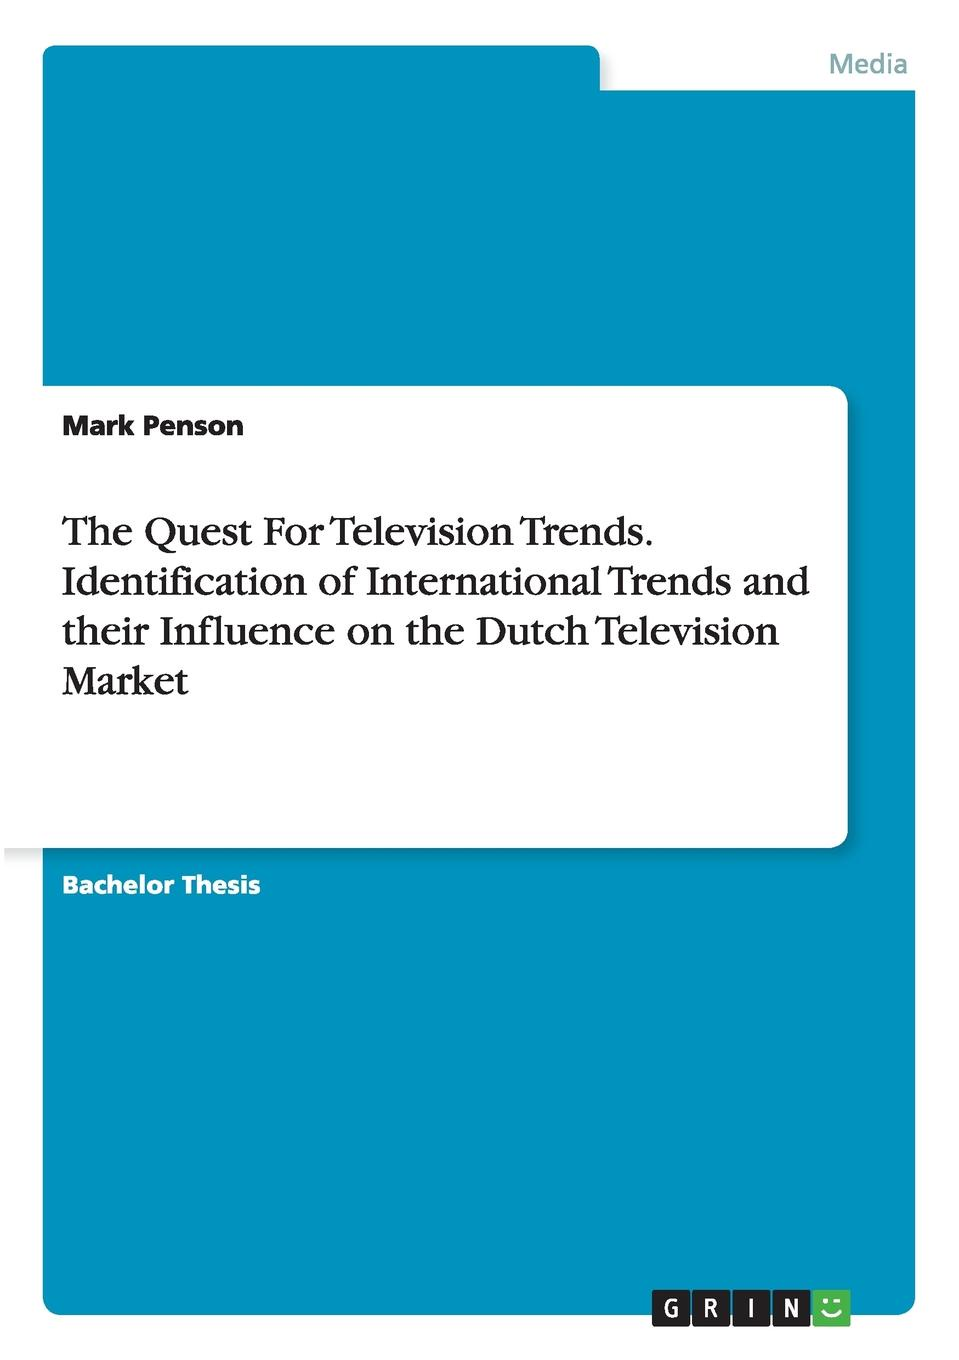 Mark Penson The Quest For Television Trends. Identification of International Trends and their Influence on the Dutch Television Market alice jones the future of internet television